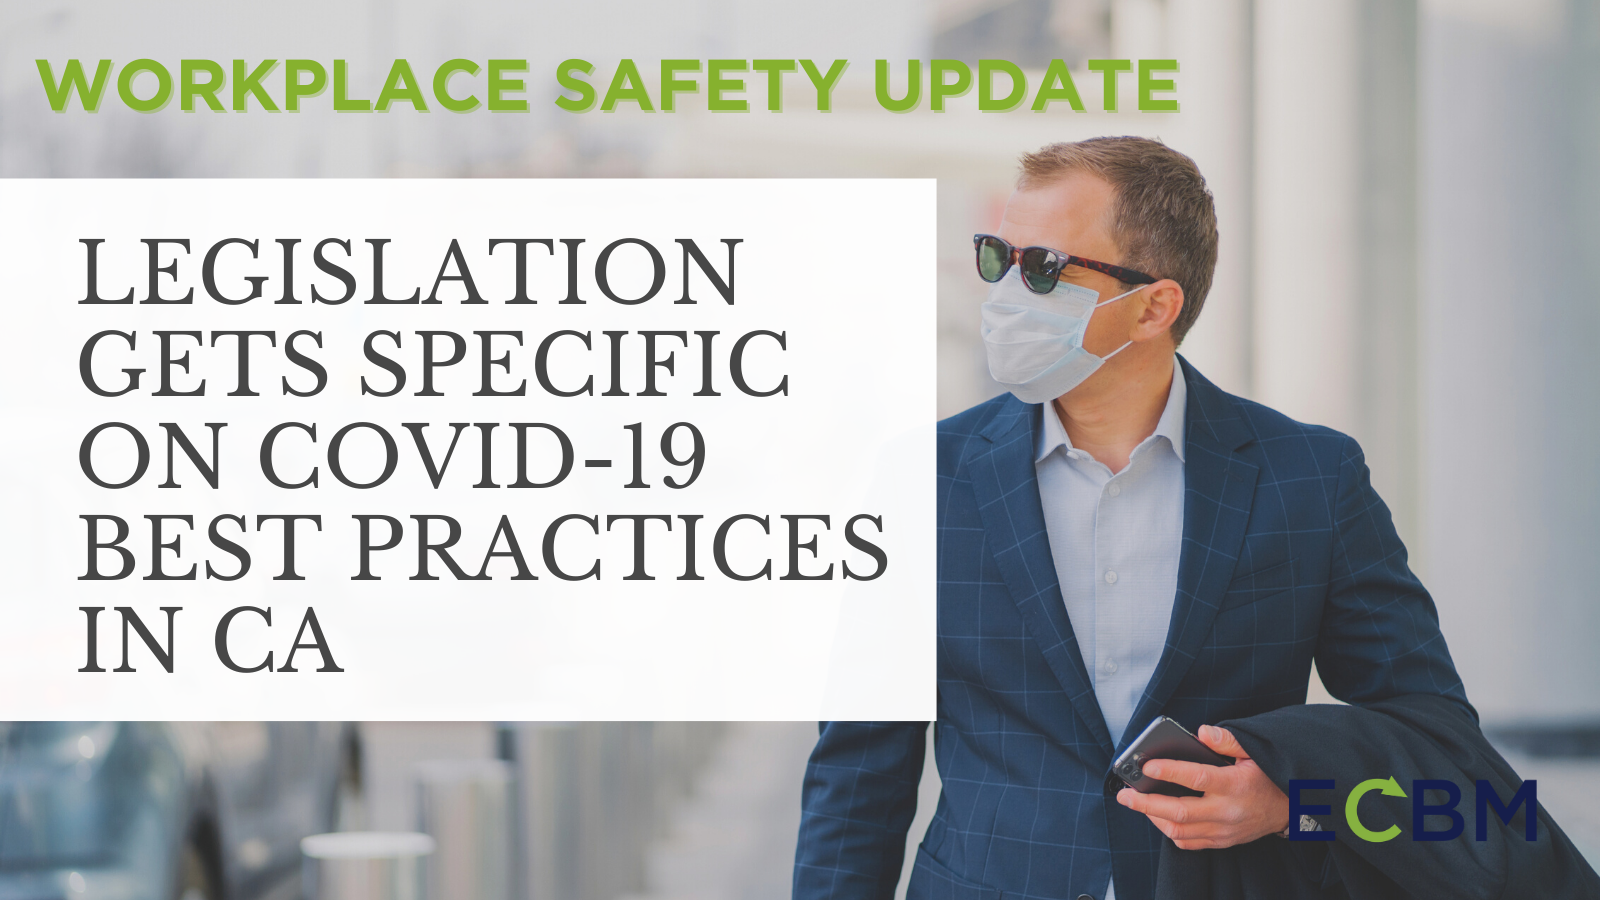 Legislation Gets Specific on COVID-19 Best Practices